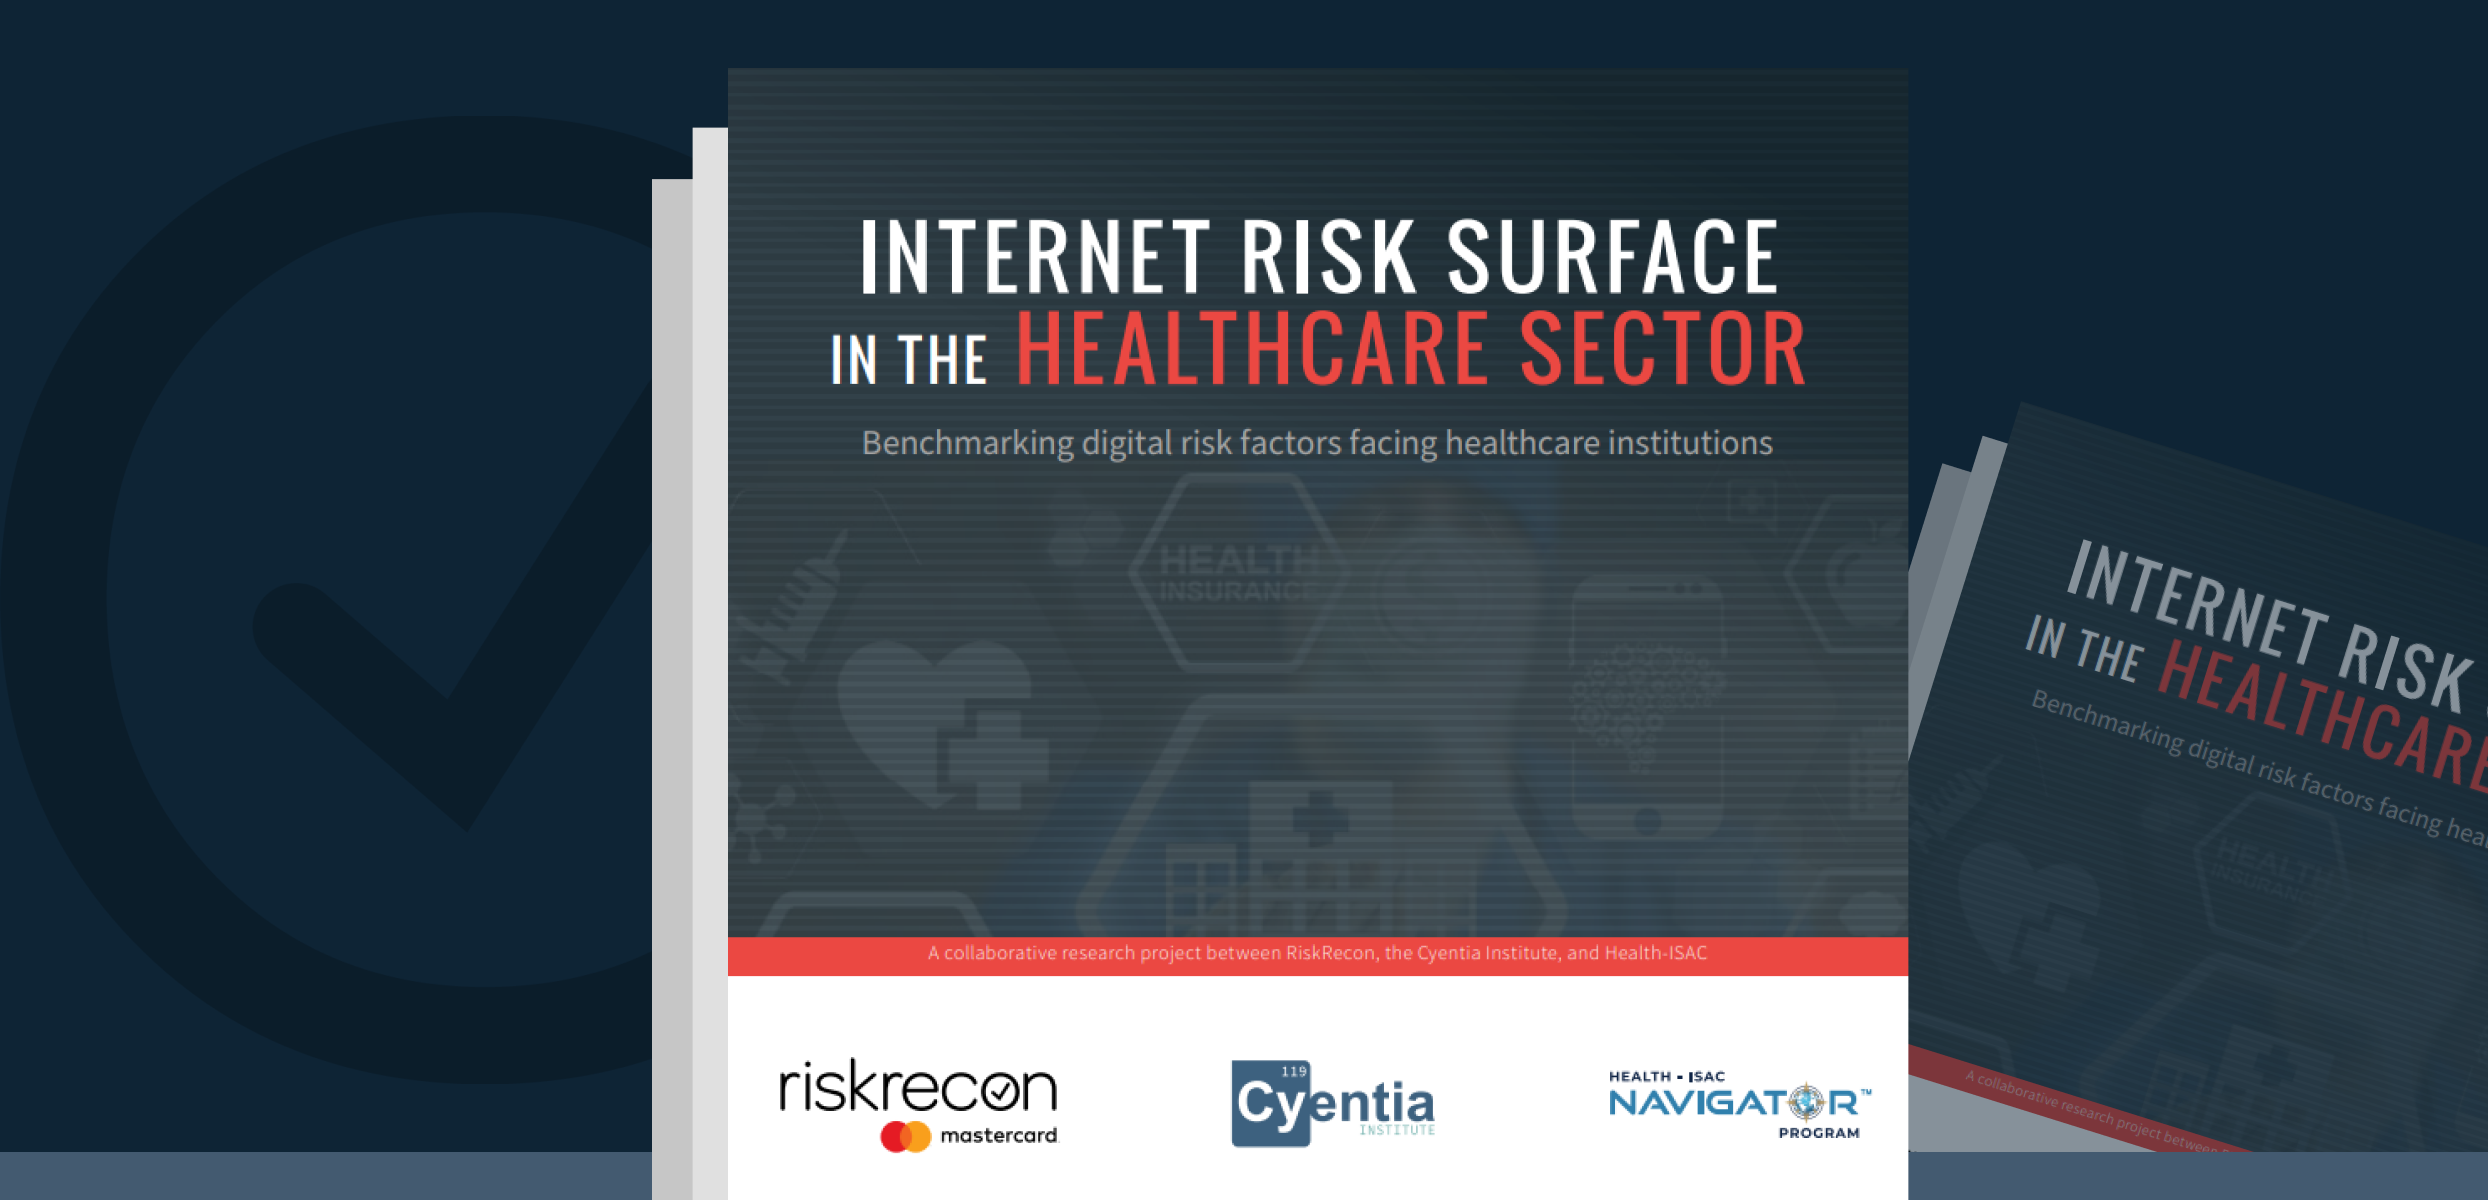 Report: Benchmarking digital risk factors facing healthcare providers